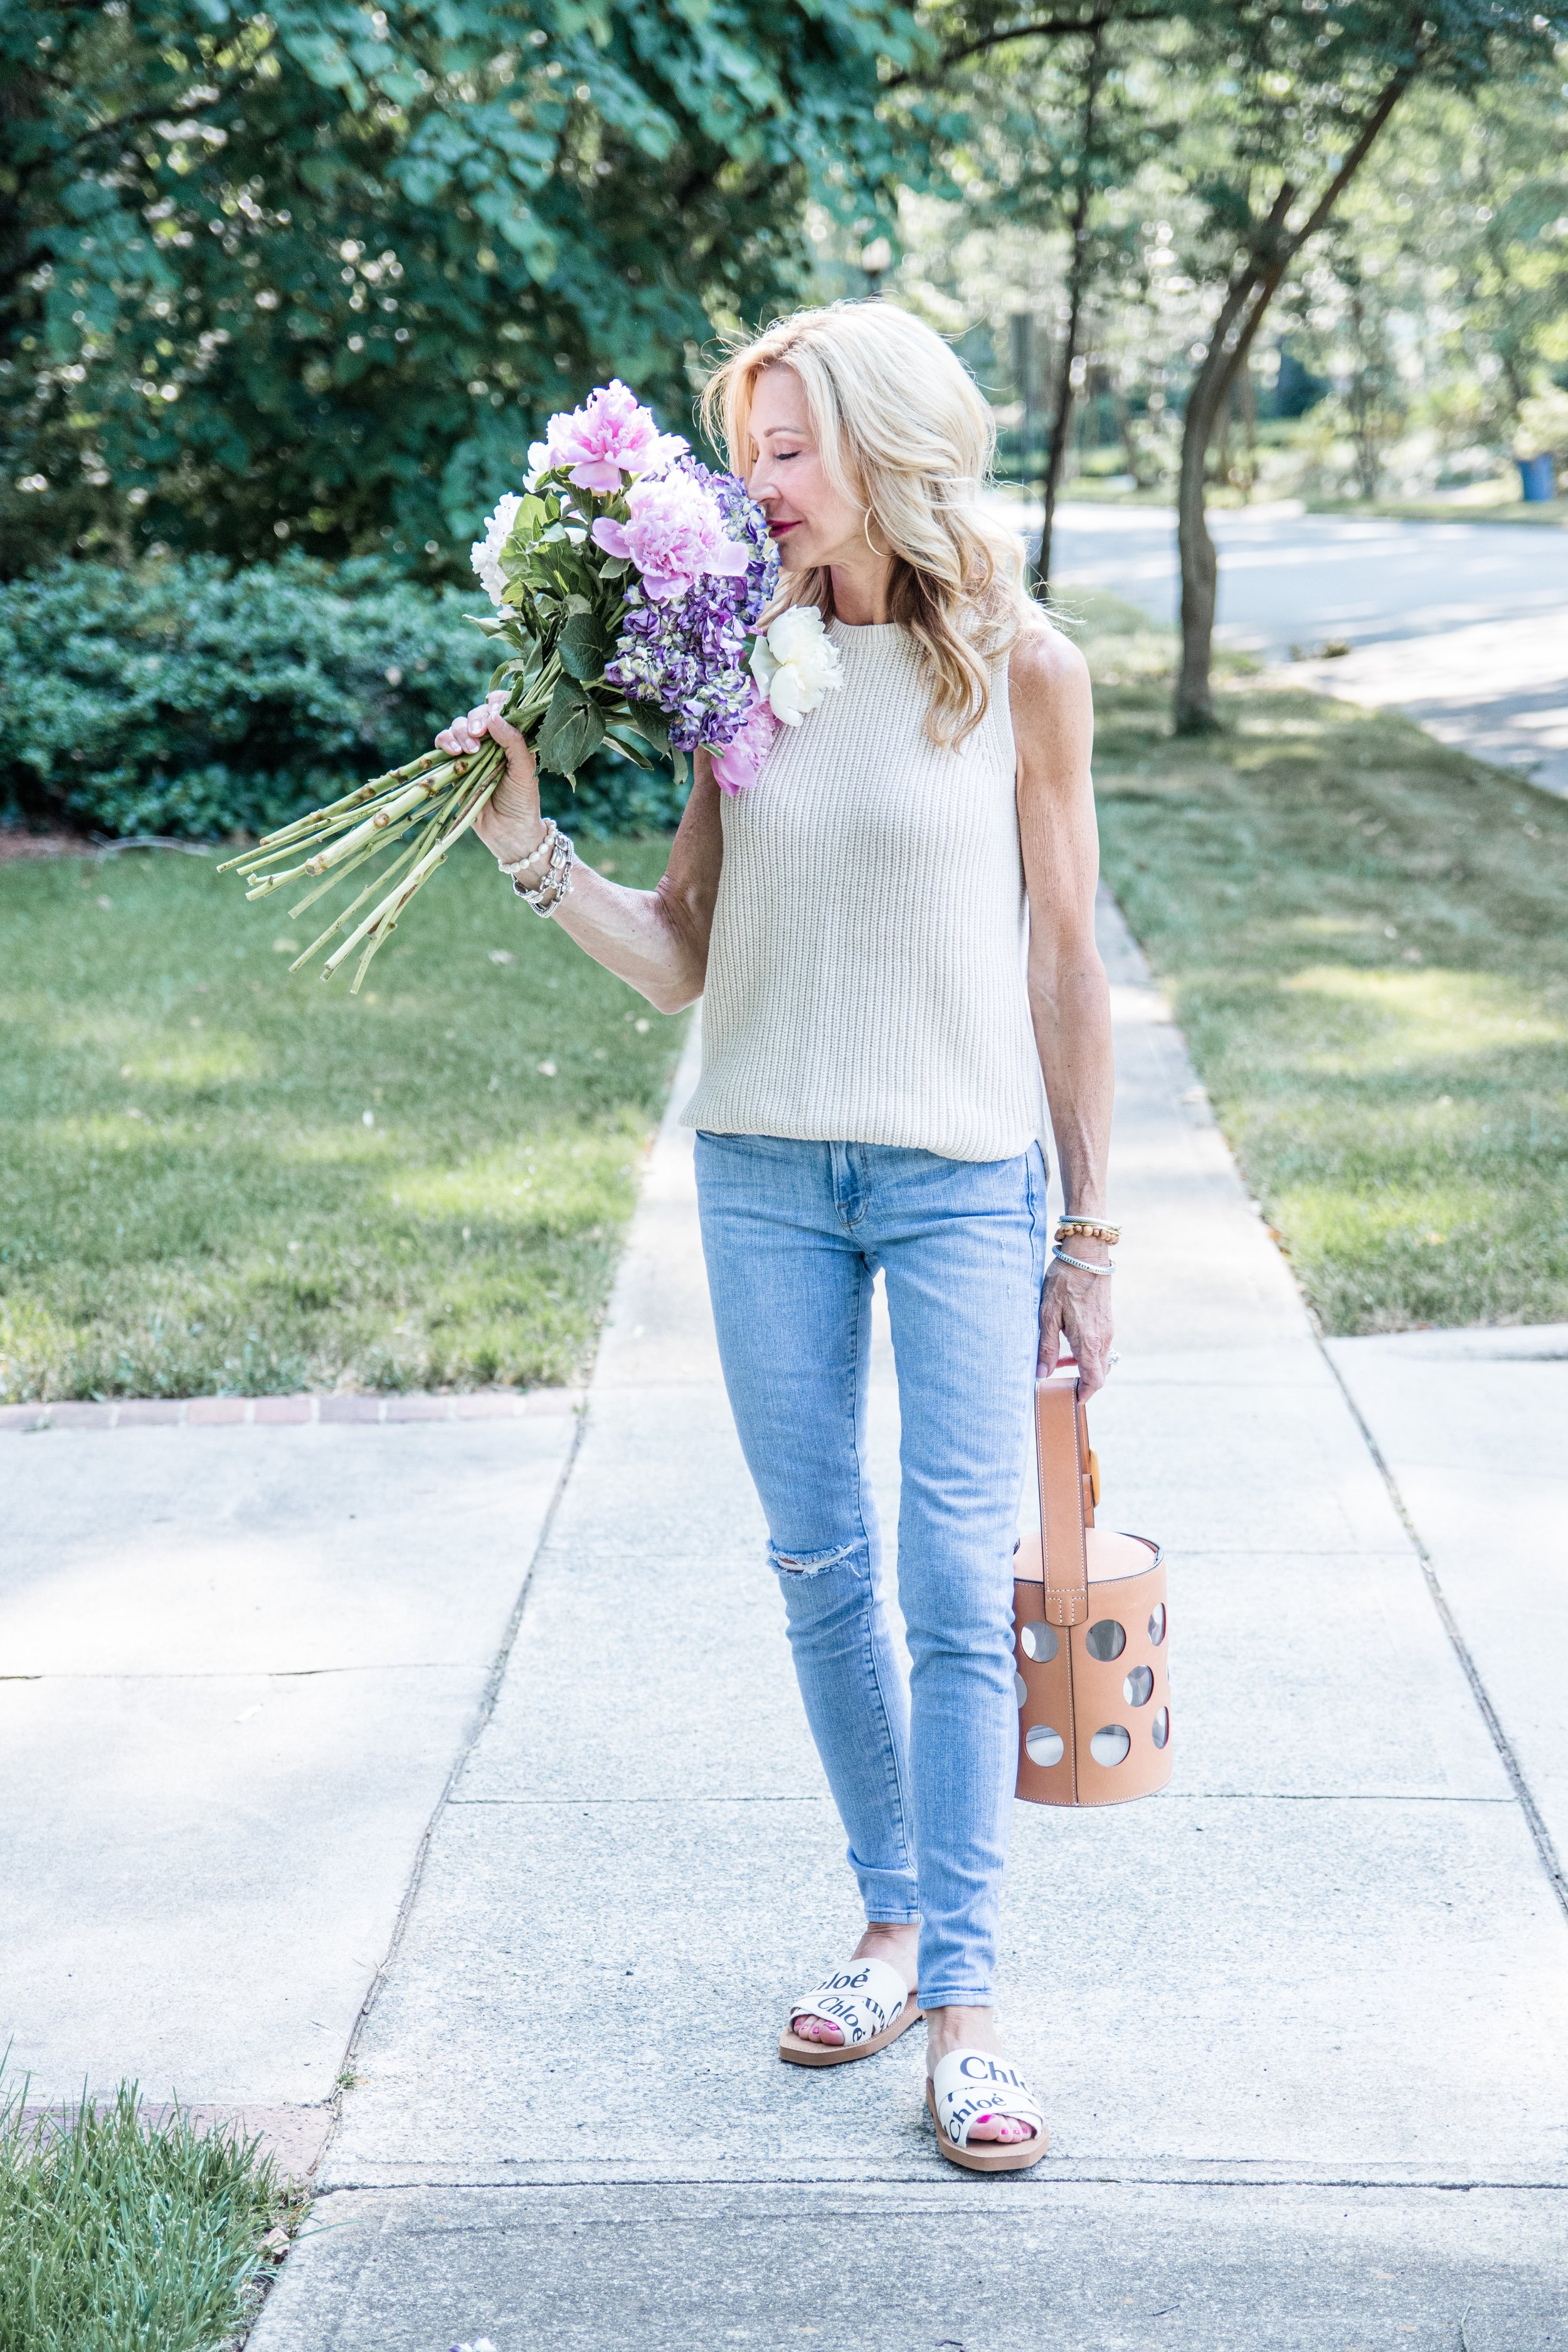 Casual Spring Outfit - Chloe Sandals, Frame Denim Jeans and Loft Sweater - Crazy Blonde Life